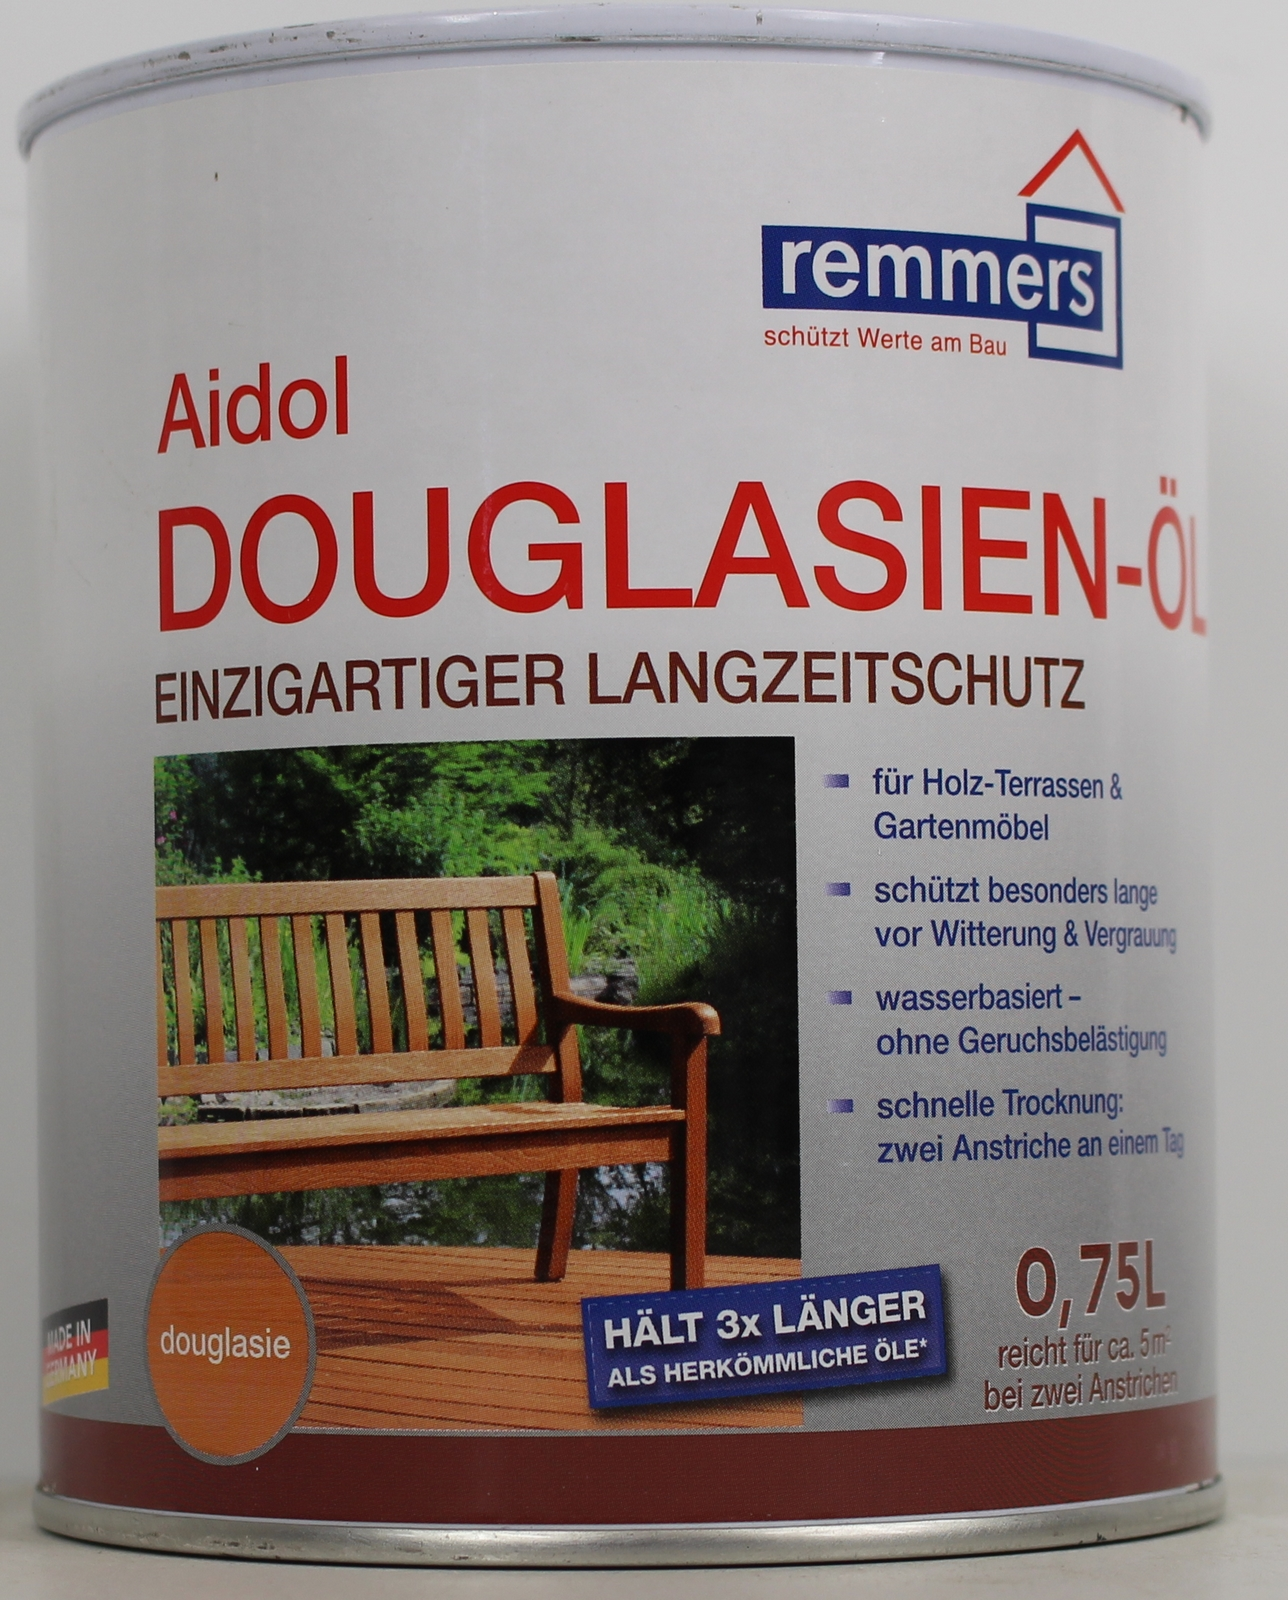 14 l remmers douglasien l douglasien l holz l holz douglasie gr enwahl ebay. Black Bedroom Furniture Sets. Home Design Ideas